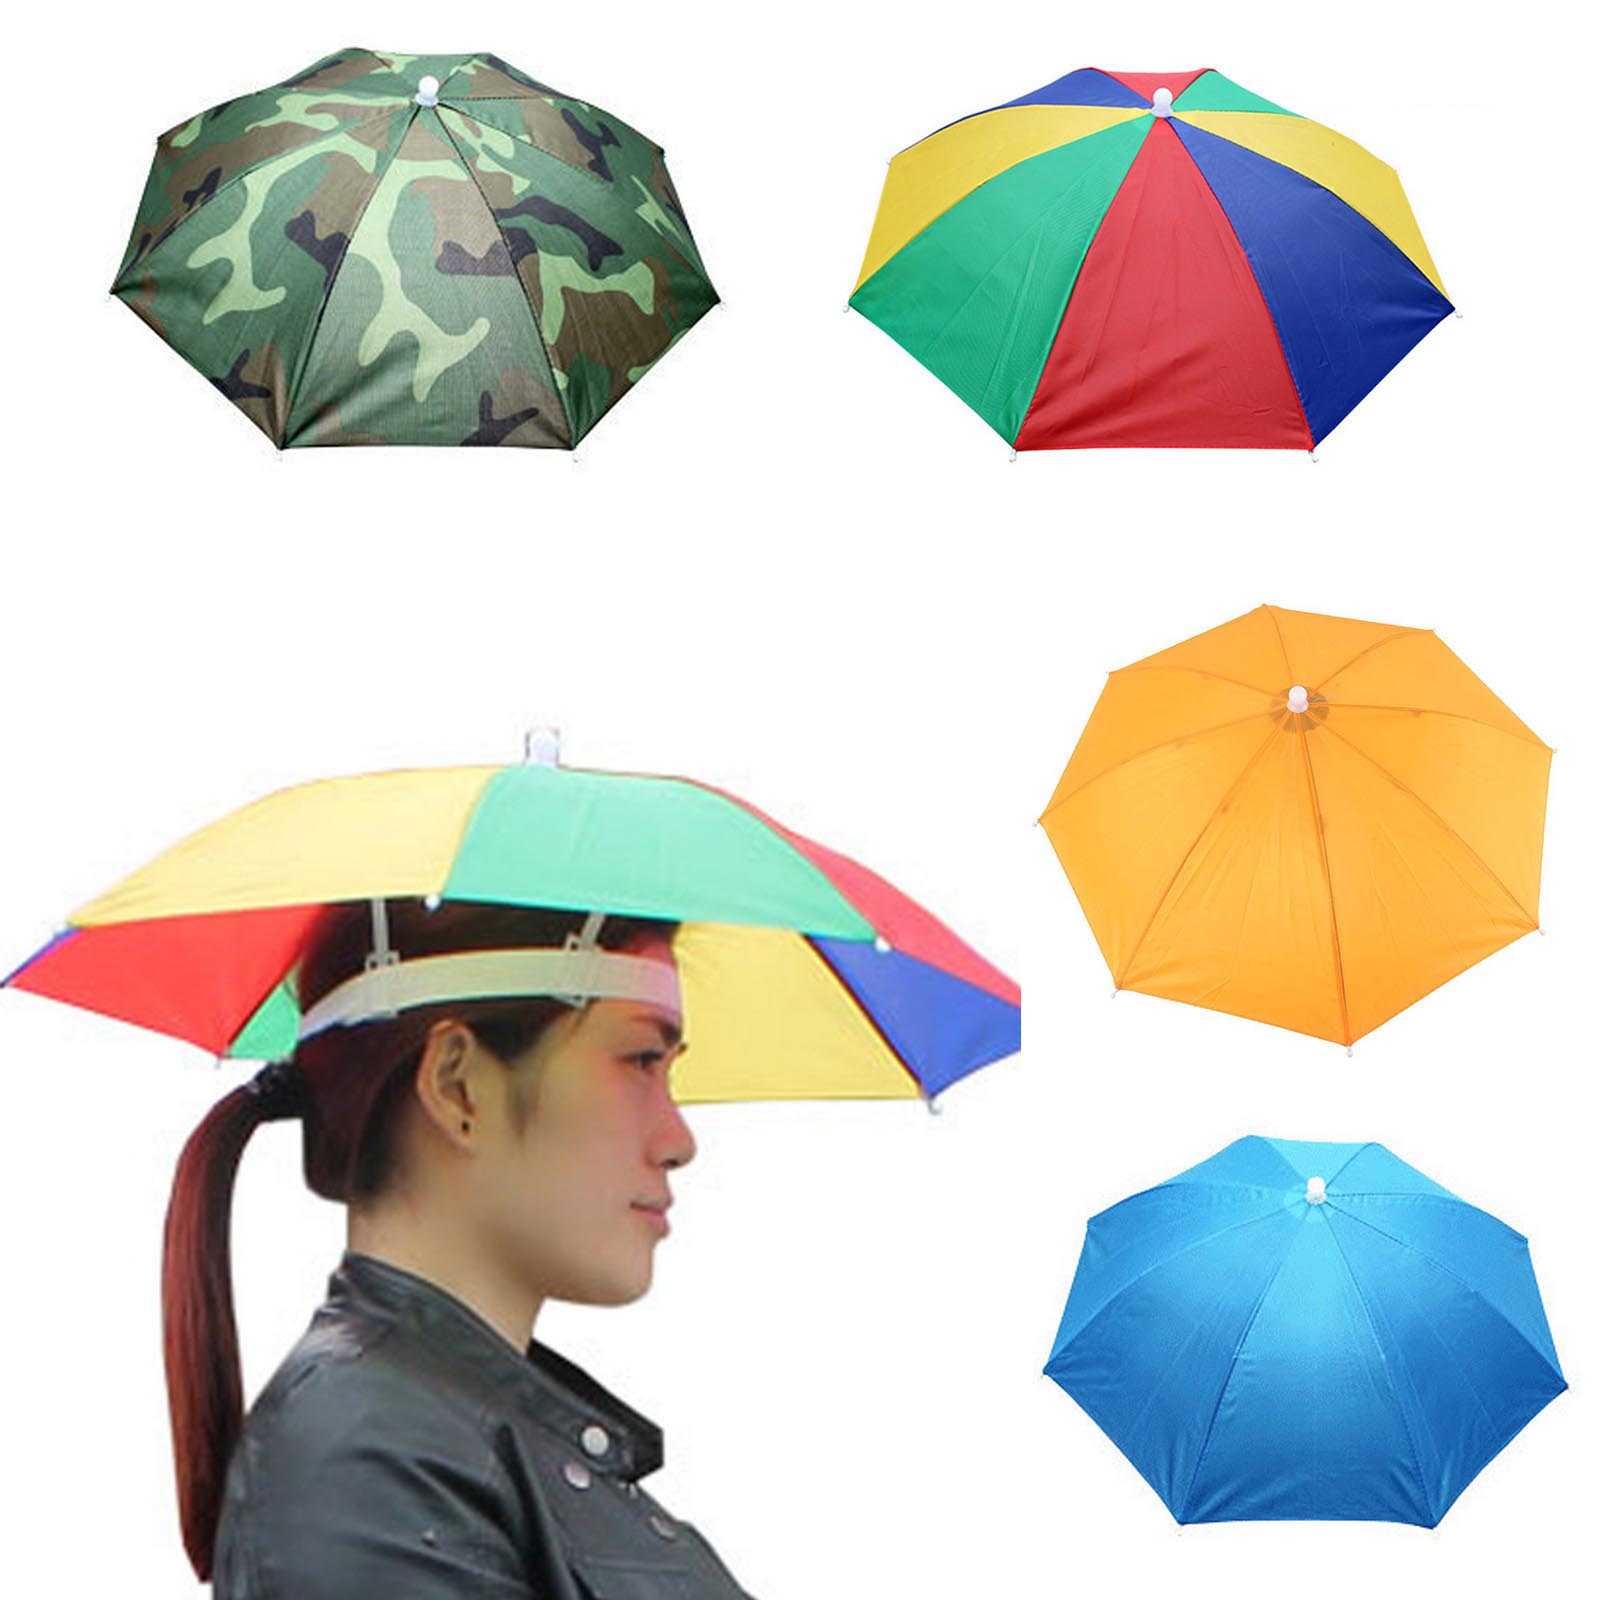 2f4c4275 Details about Umbrella Hat Sun Shade Camping Fishing Hiking Festivals  Outdoor Brolly 4 Color